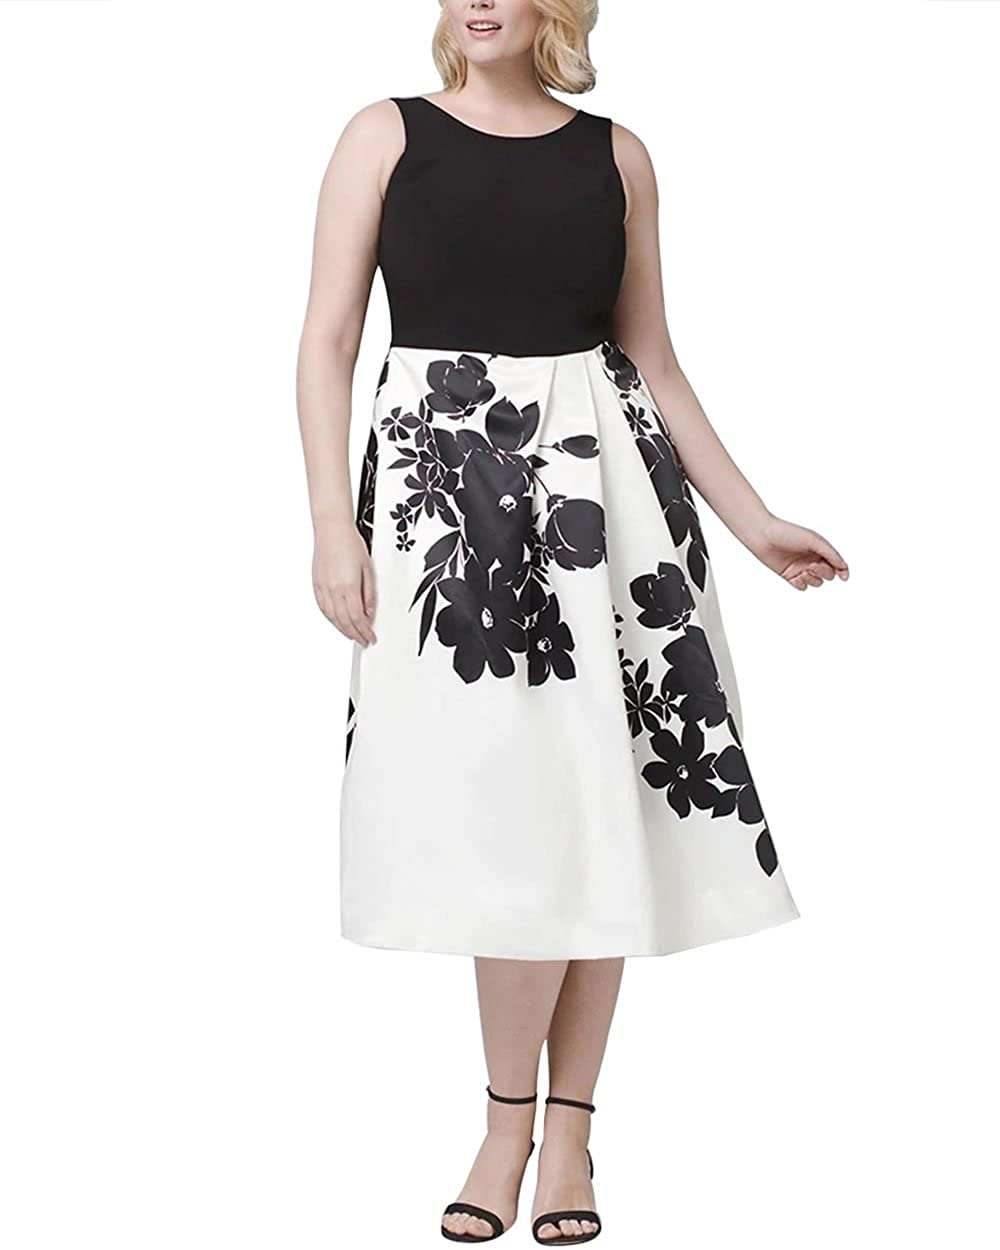 b6dd23a32 We called upon our heritage tones to create this impressive design with a  burst of black flowers against its white midi skirt.